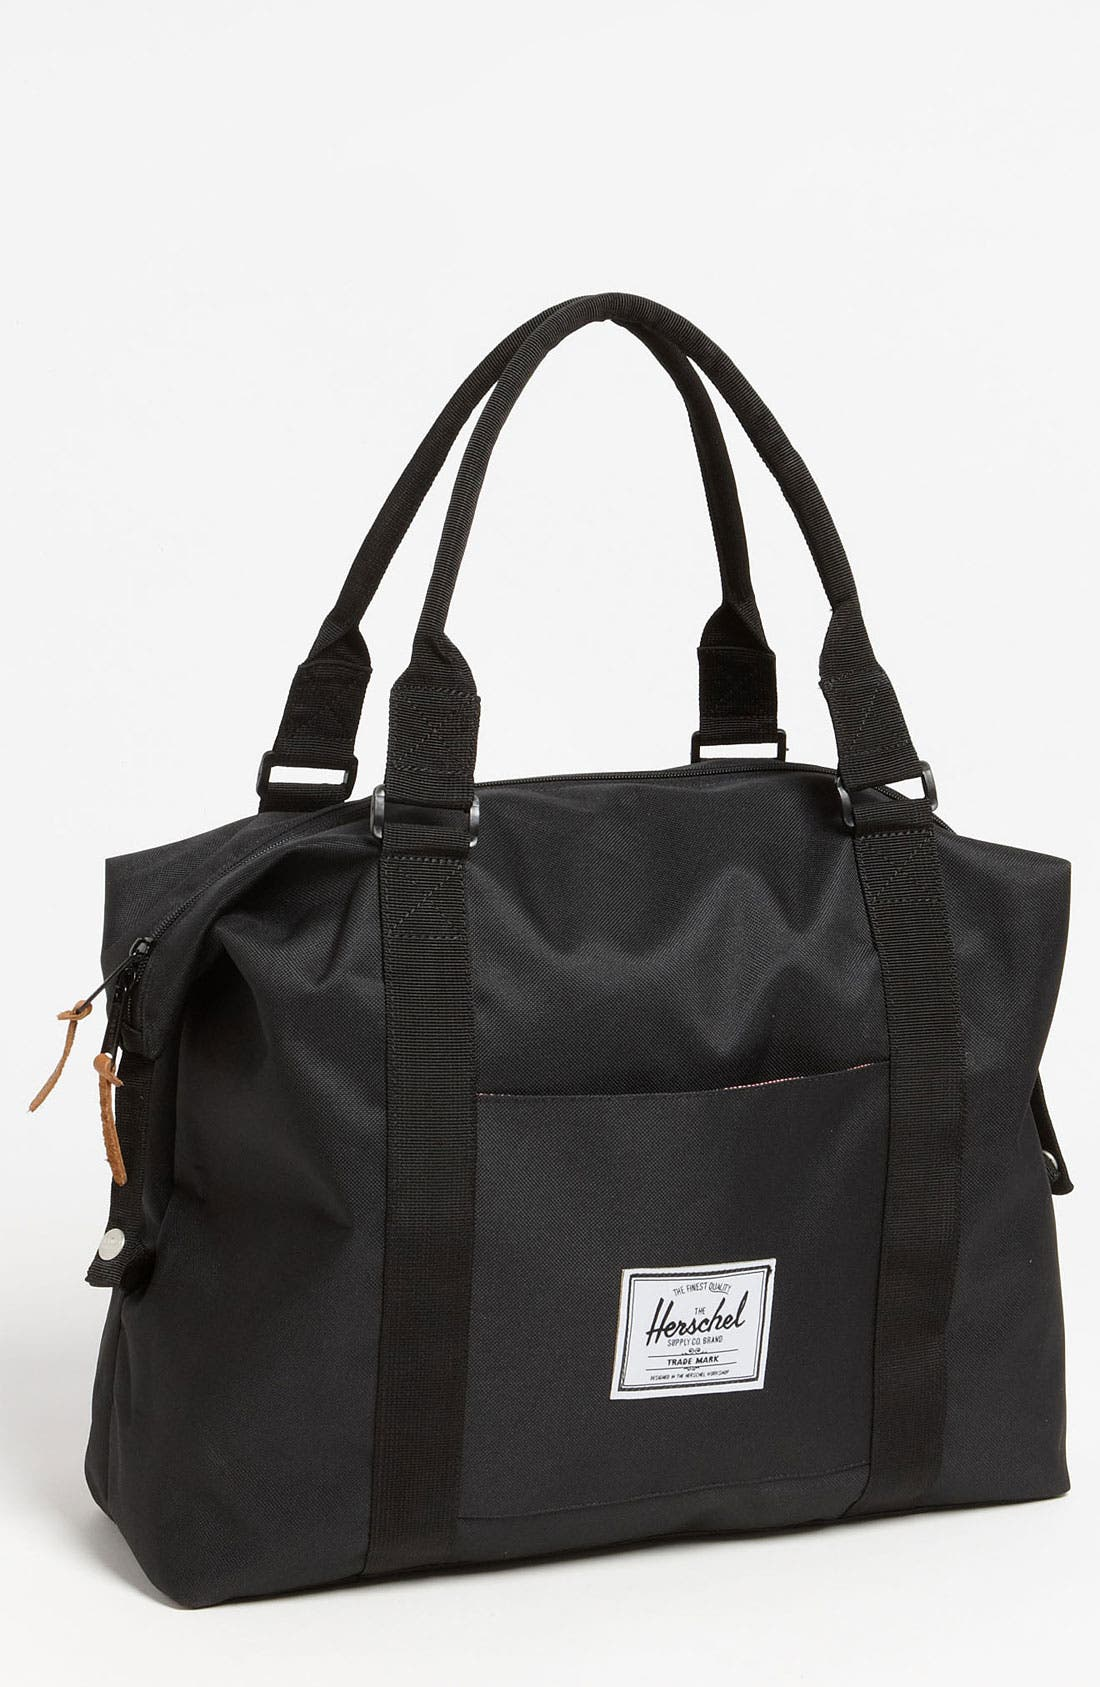 Main Image - Herschel Supply Co. 'Strand' Duffel Bag